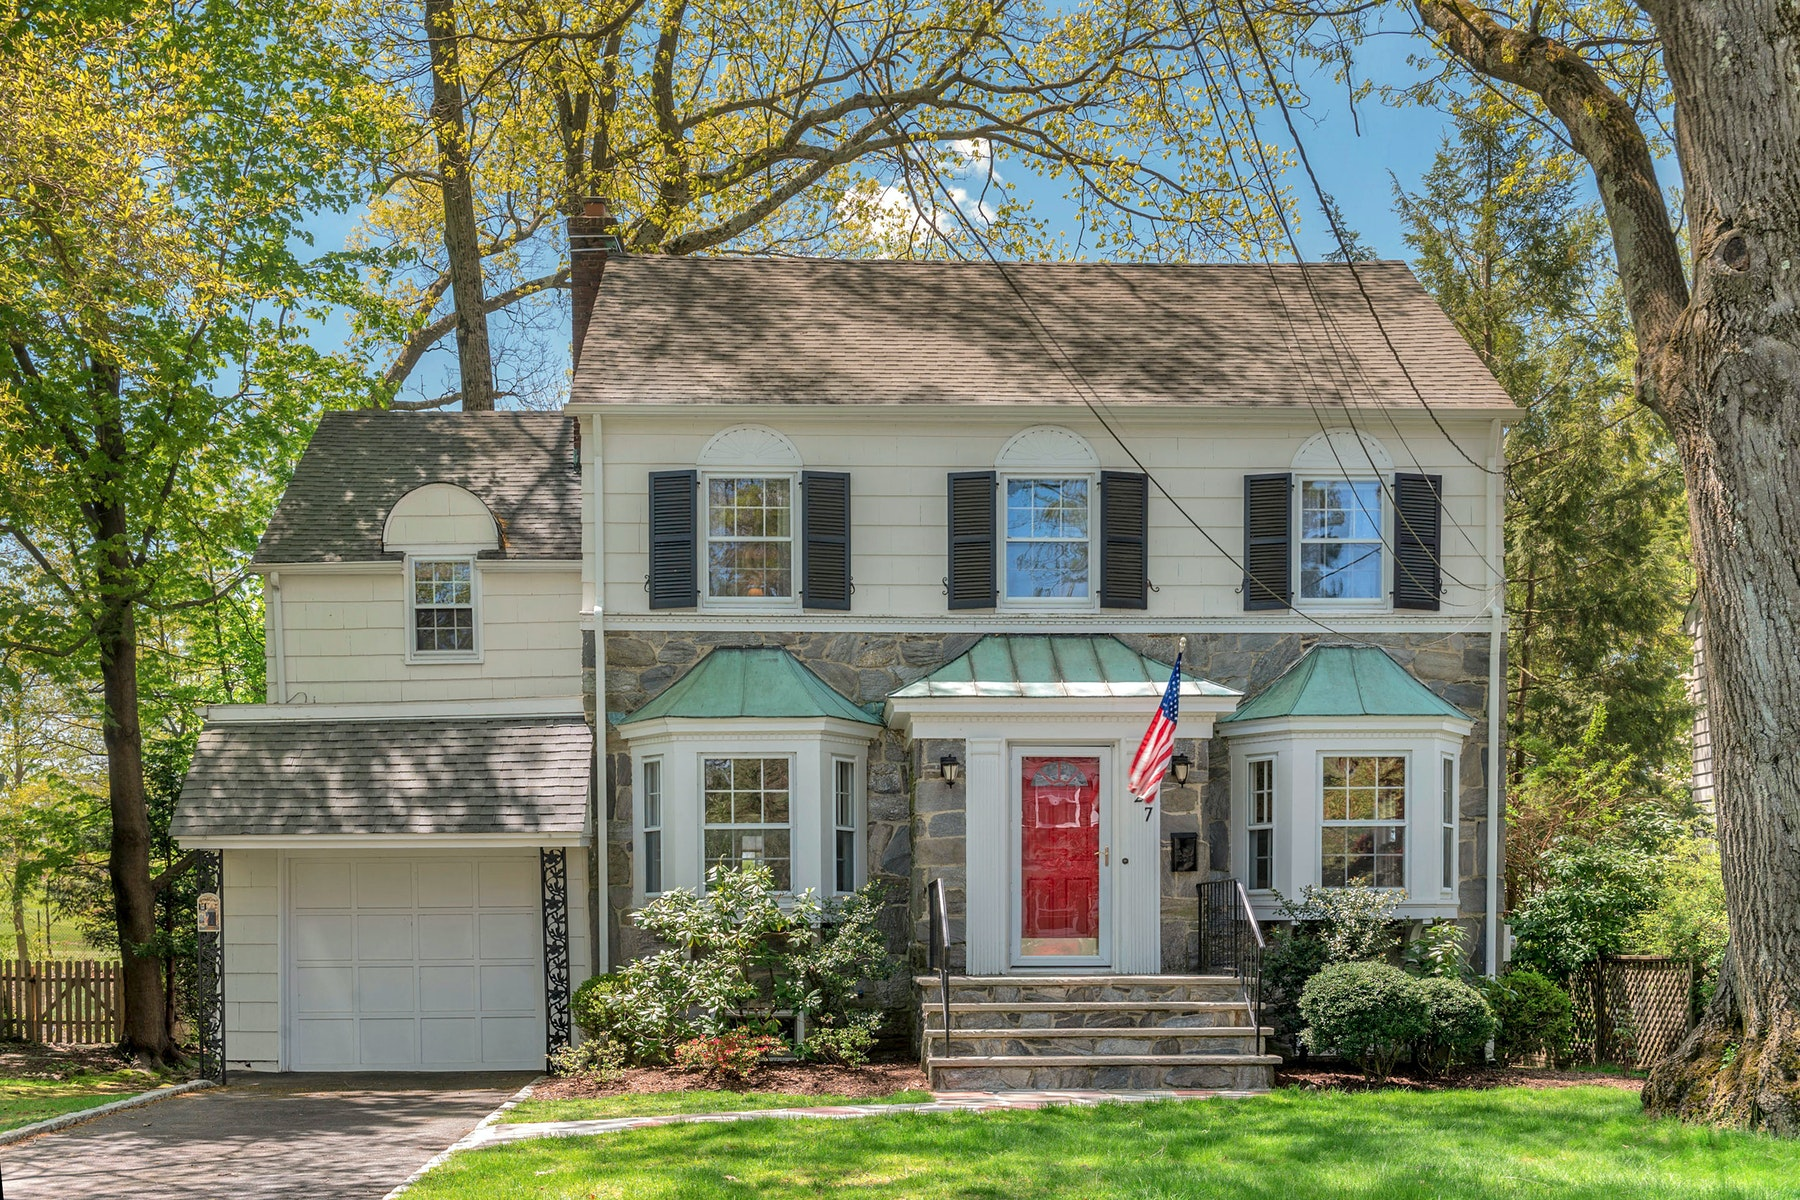 Single Family Homes for Sale at Classic Colonial 27 Birdseye Glen Verona, New Jersey 07044 United States